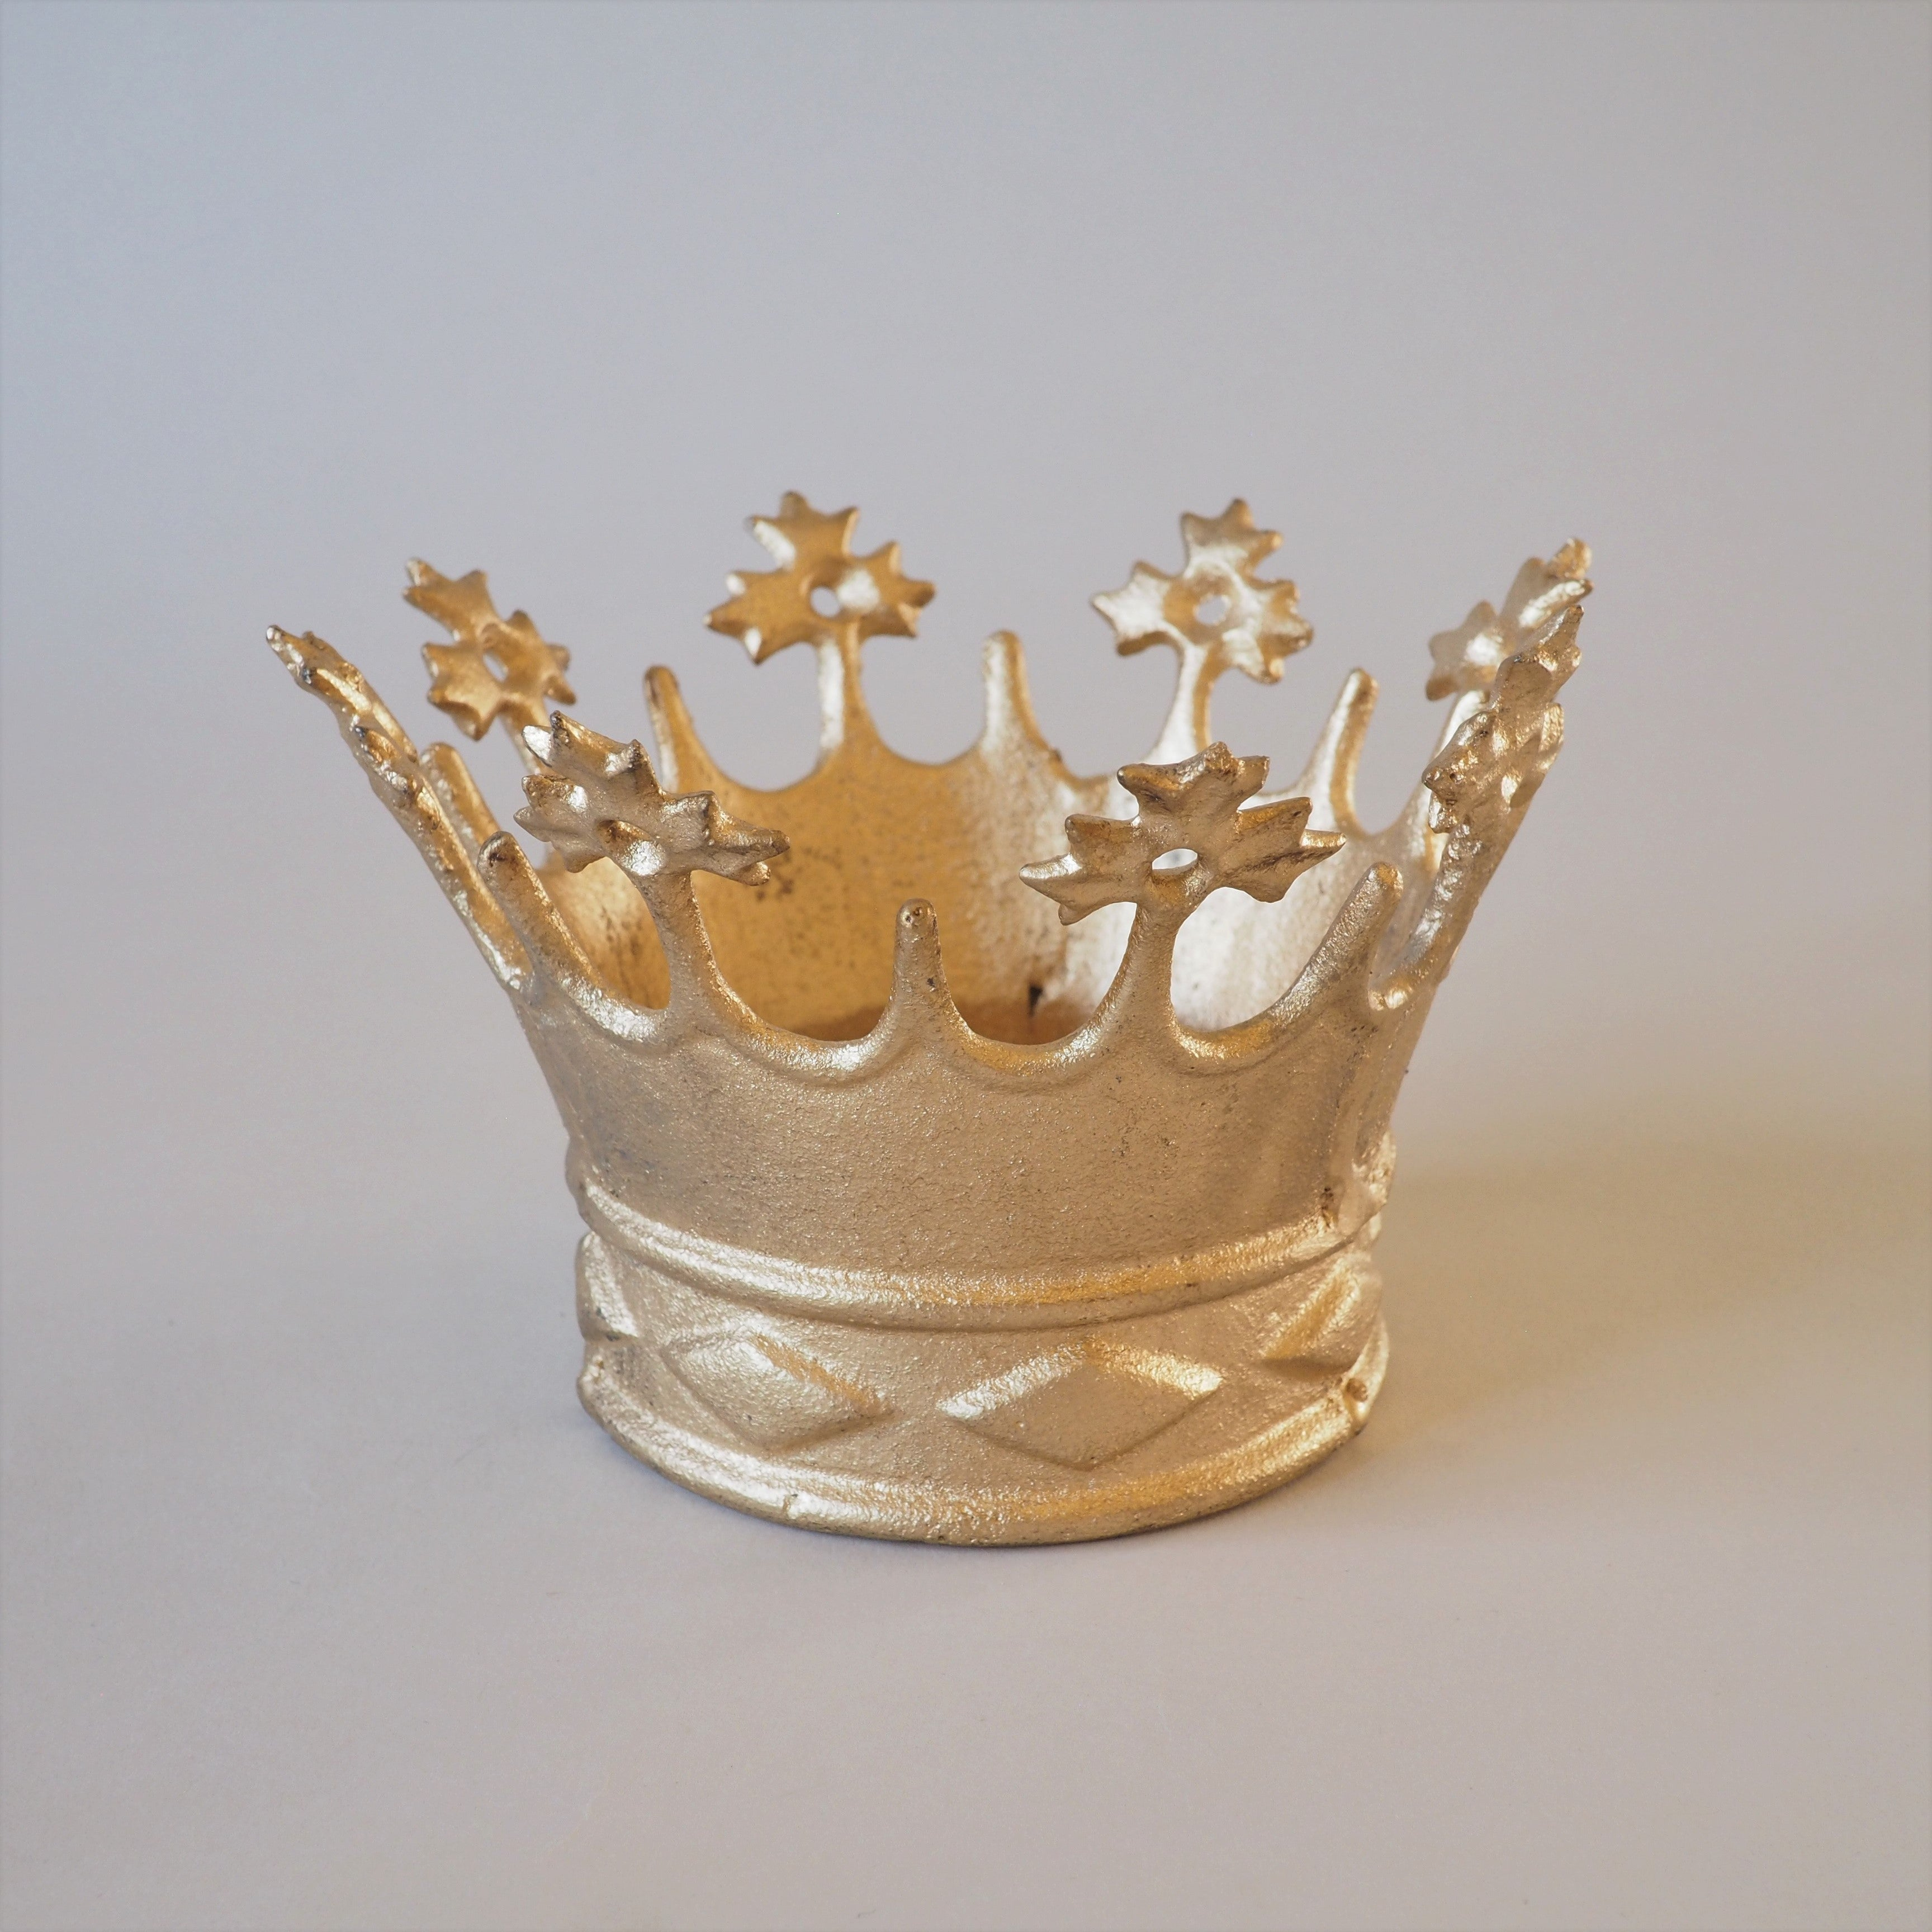 Cast Iron Golden Crown